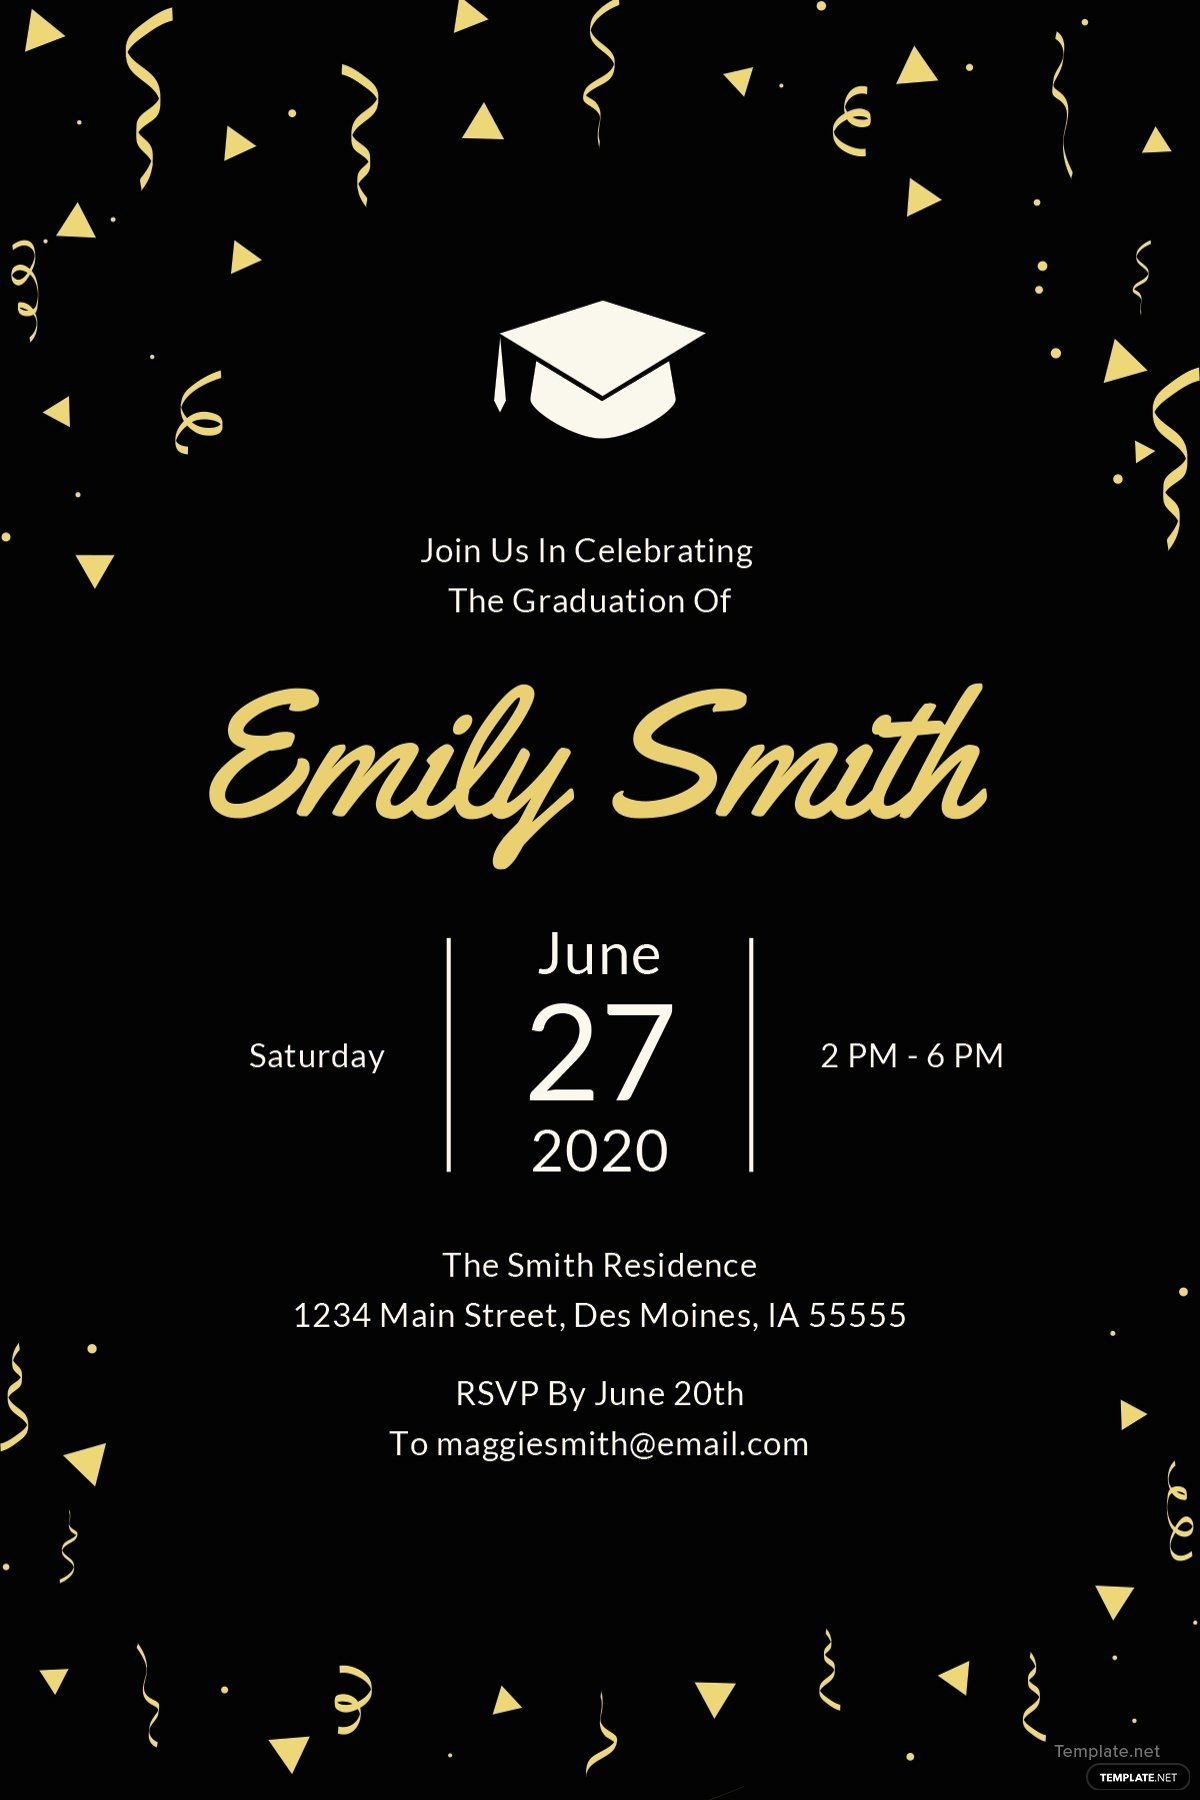 Graduation Dinner Invitation Template Best Of Free Graduation Invitation Template In Microsoft Word